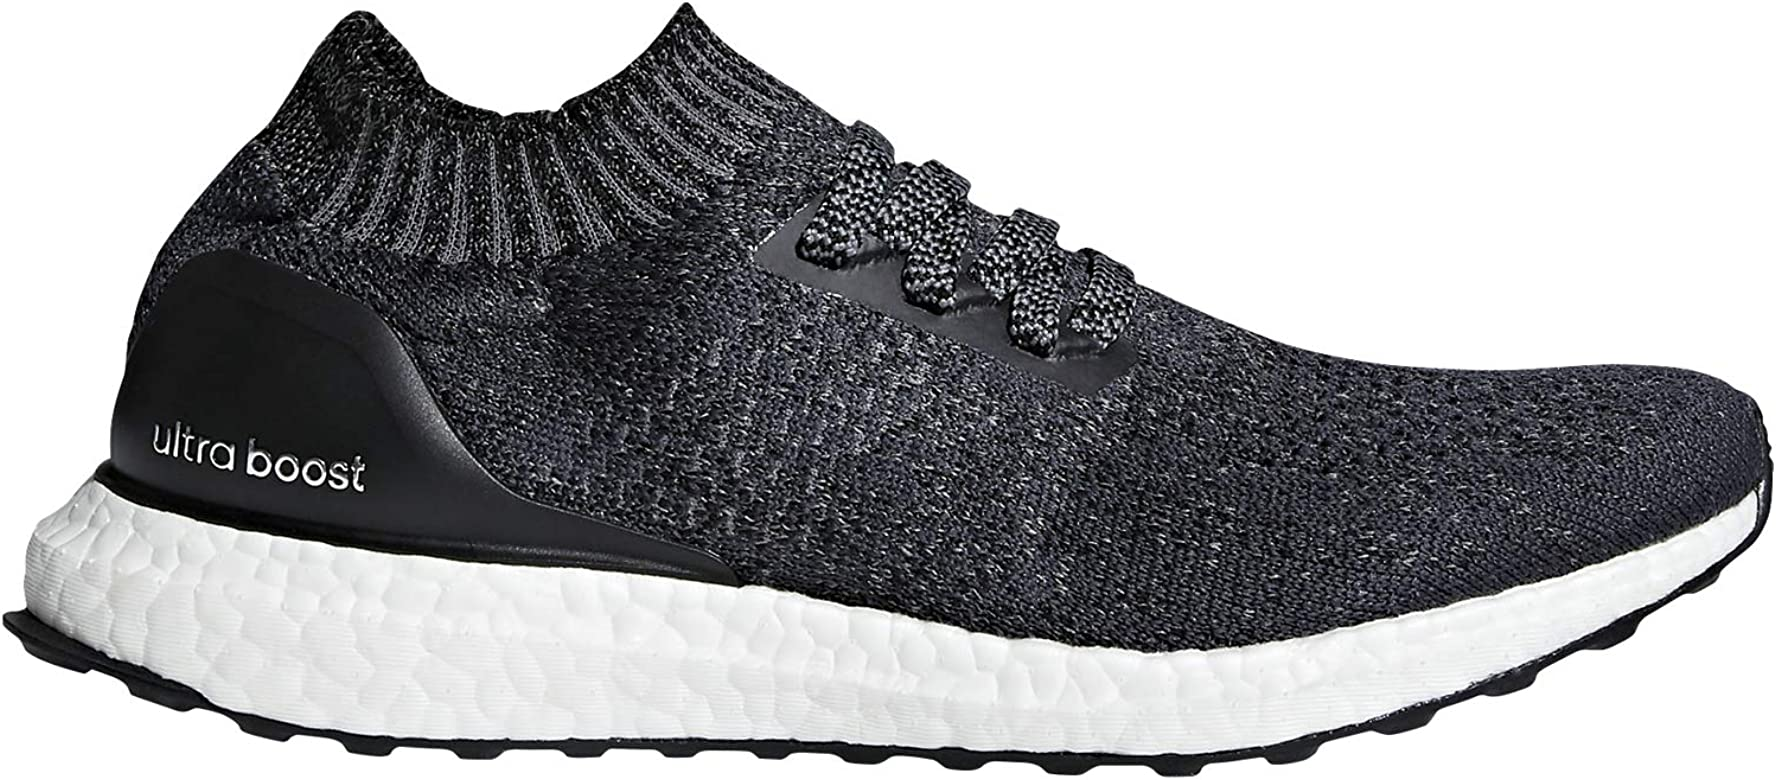 List of Pinterest boost ultra uncaged pictures & Pinterest